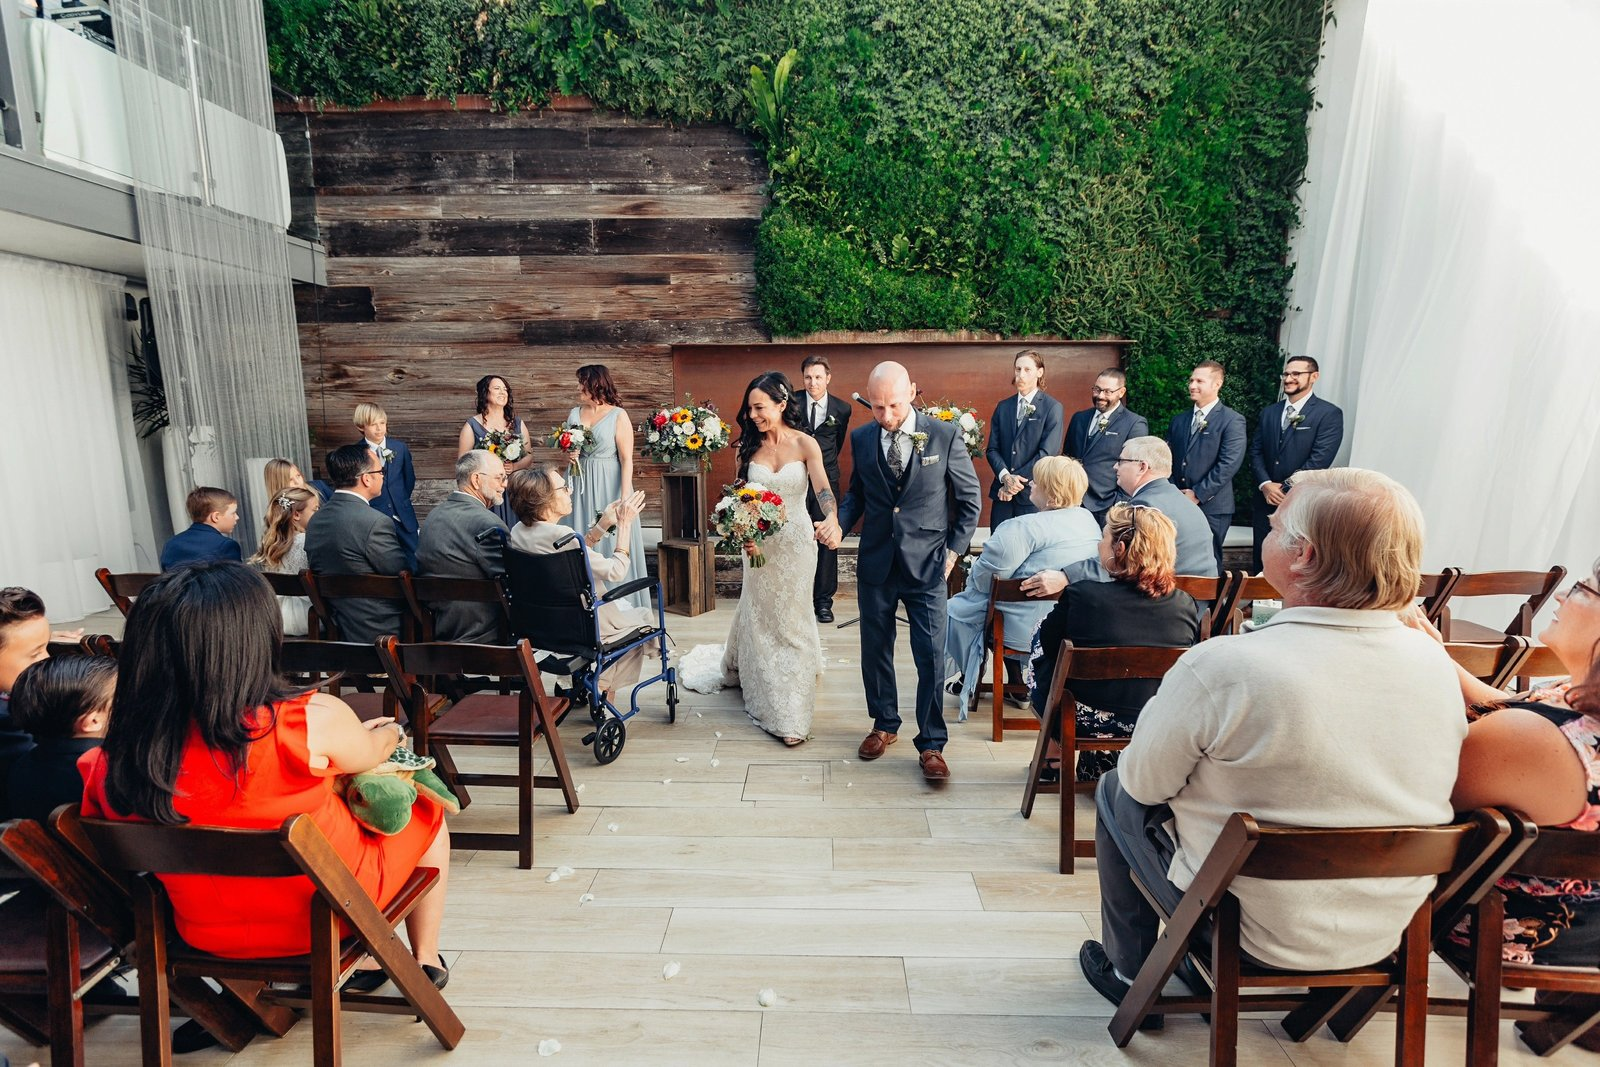 741hotel-laguna-beach-wedding46